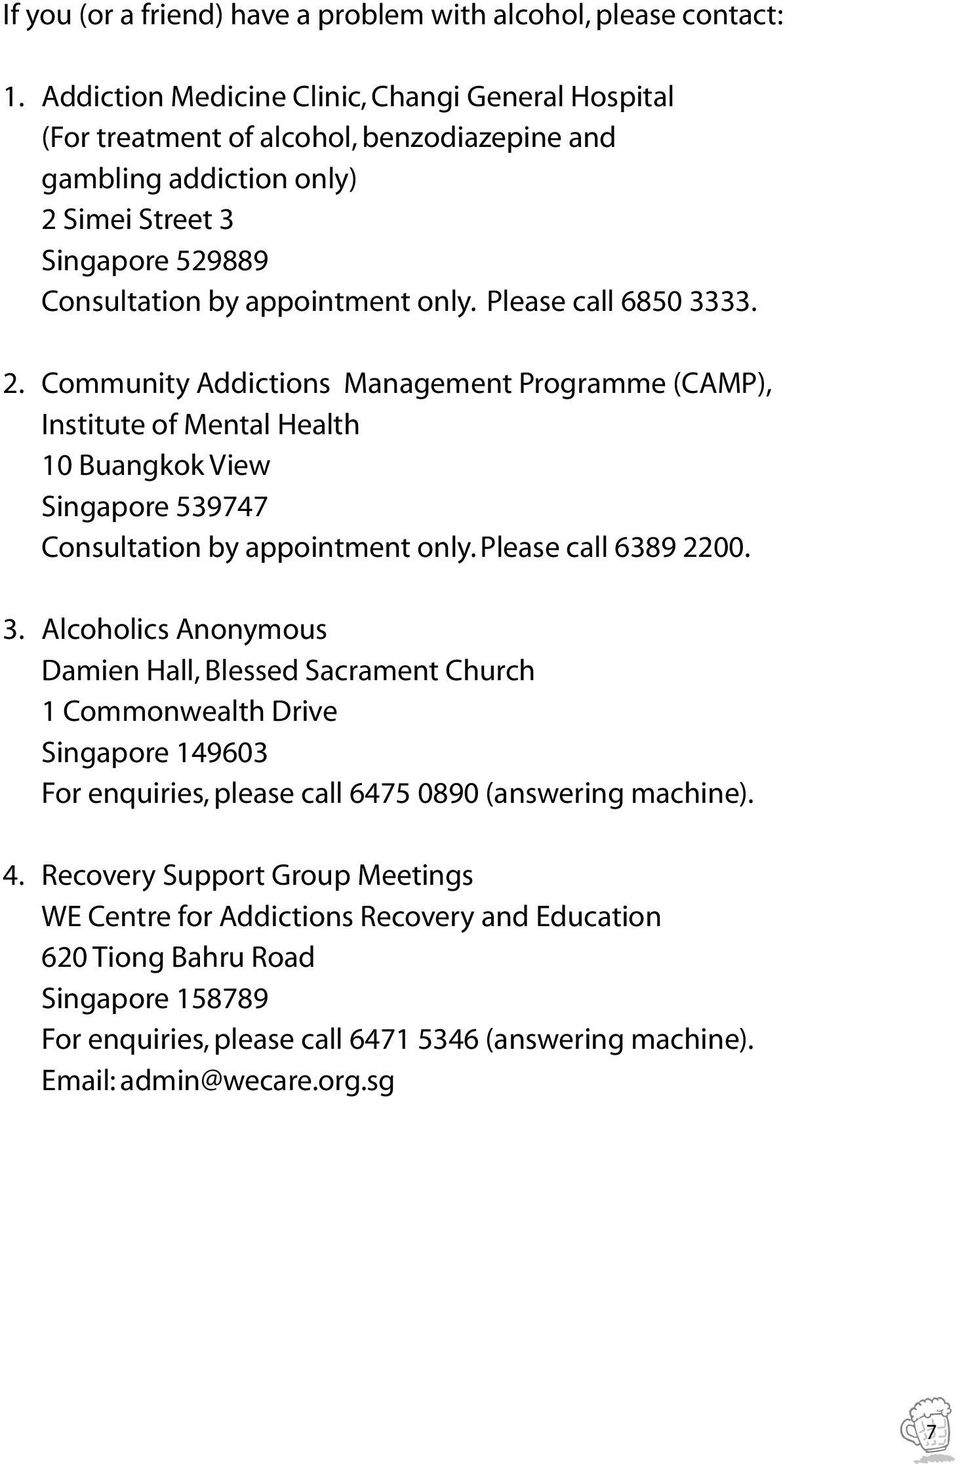 Please call 6850 3333. 2. Community Addictions Management Programme (CAMP), Institute of Mental Health 10 Buangkok View Singapore 539747 Consultation by appointment only. Please call 6389 2200. 3. Alcoholics Anonymous Damien Hall, Blessed Sacrament Church 1 Commonwealth Drive Singapore 149603 For enquiries, please call 6475 0890 (answering machine).